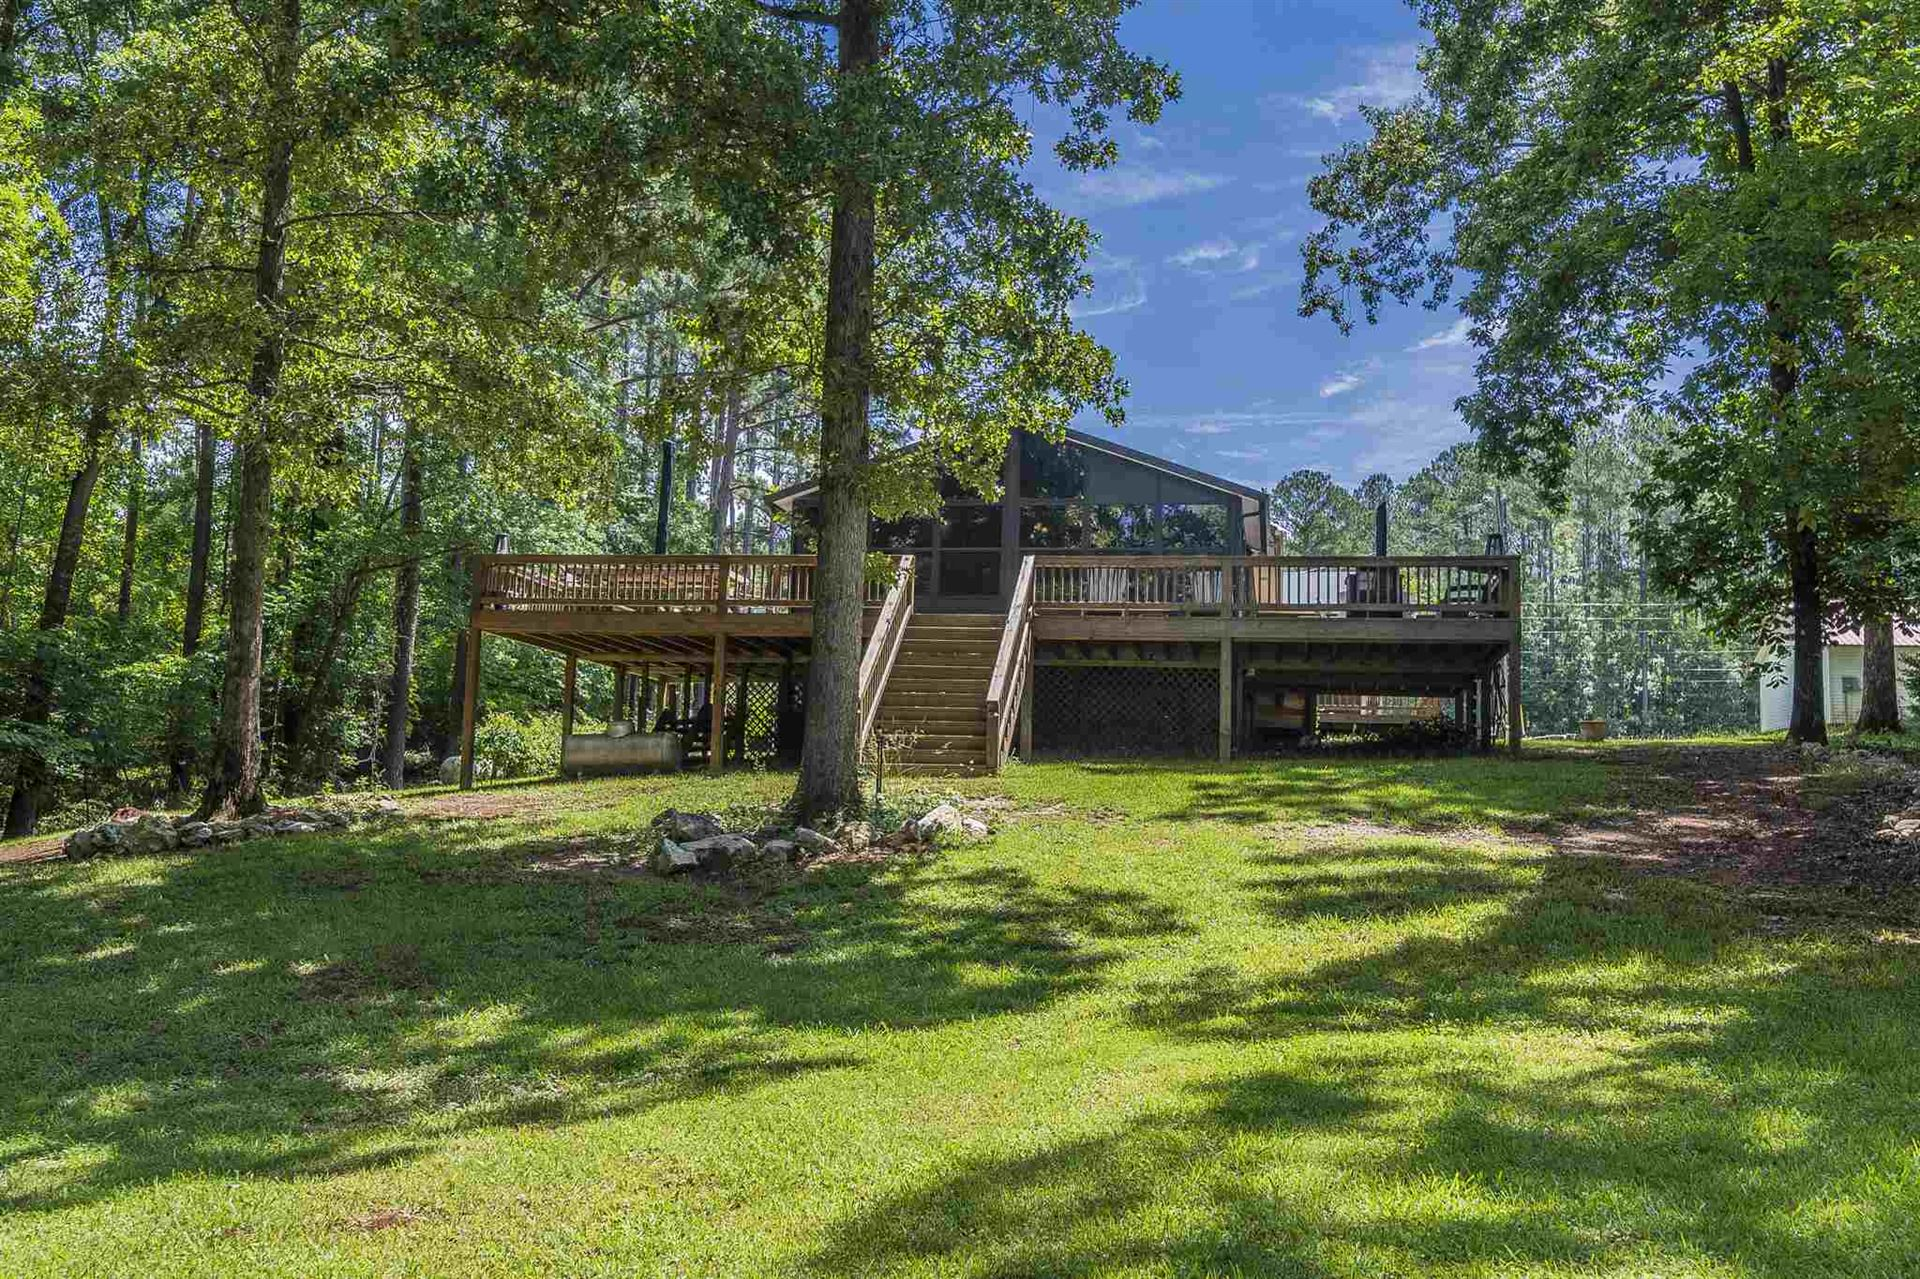 744 South Steel Bridge Rd, Eatonton, GA 31024 - MLS#: 8875124